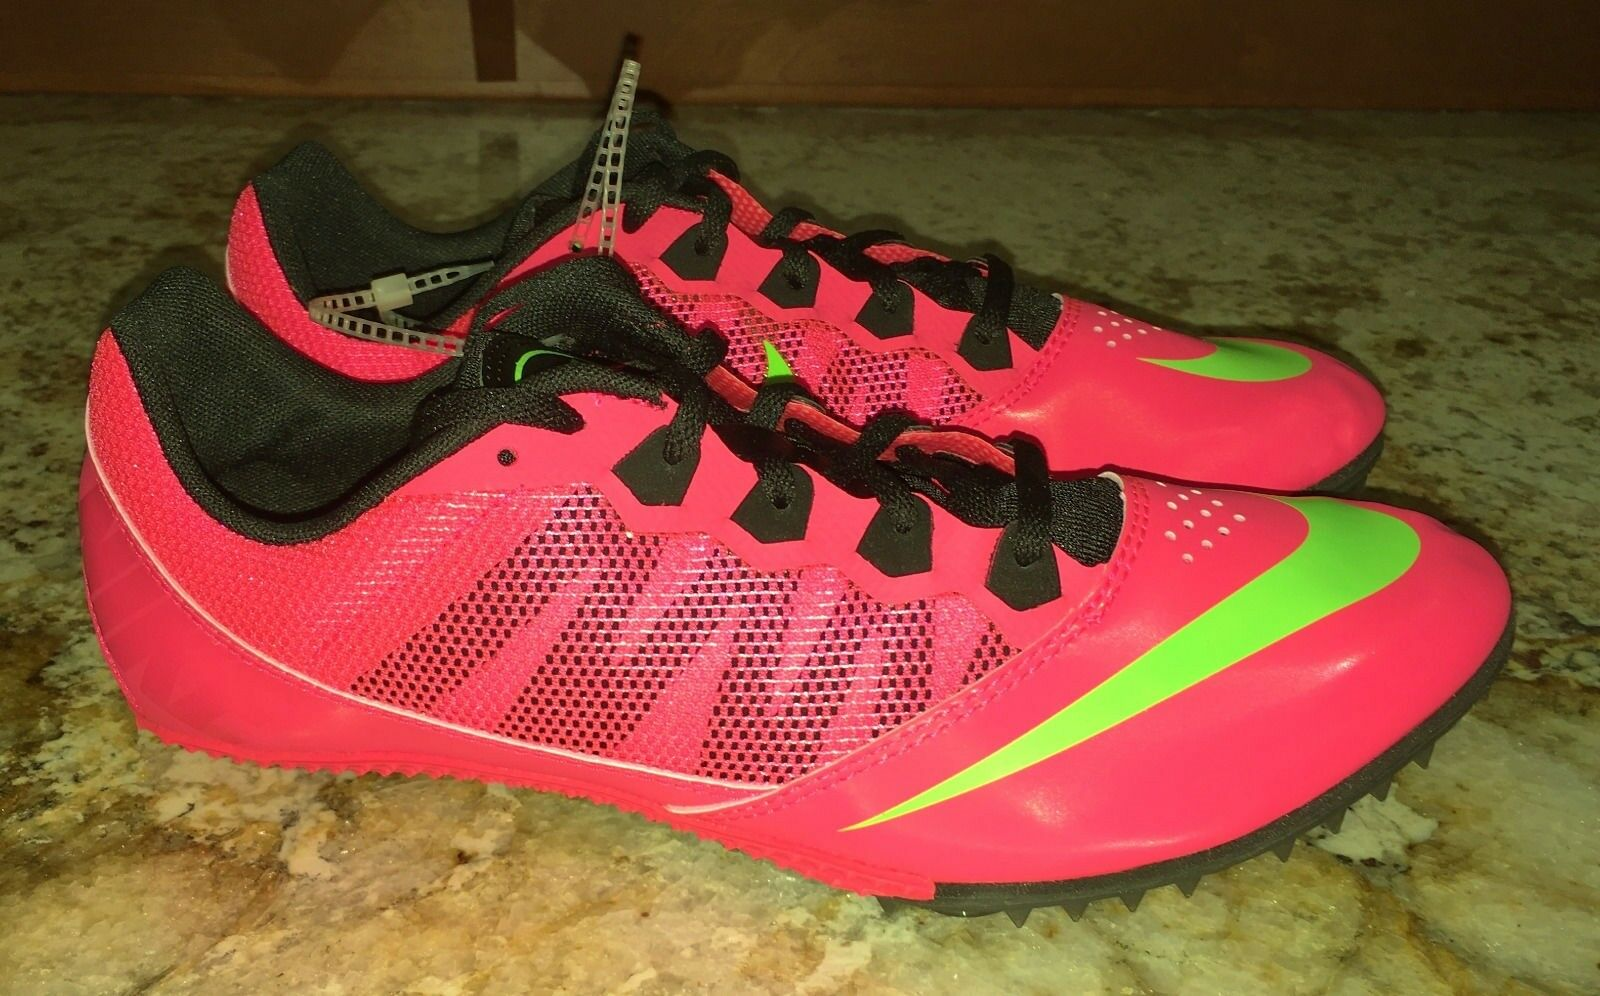 NIKE Rival S 7 Hyper Punch Lime Green Sprint Track Spikes Shoes NEW Mens 11 14 The latest discount shoes for men and women